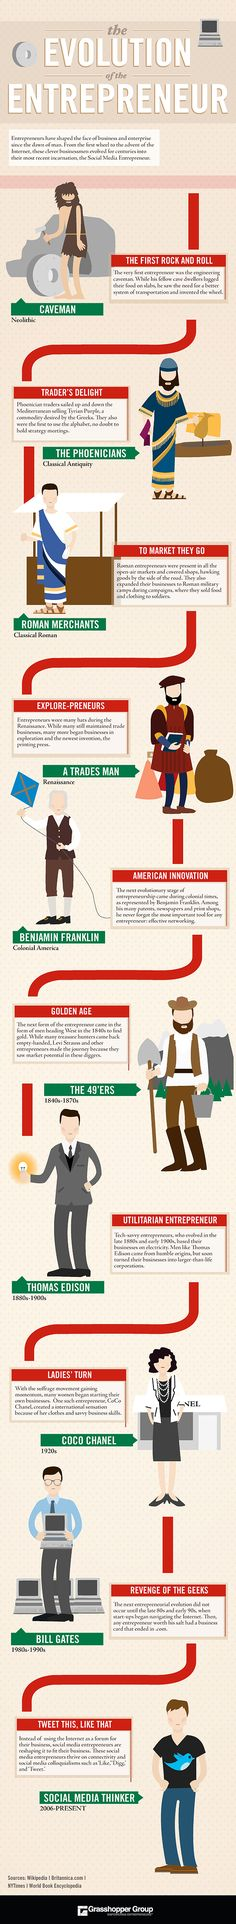 The Evolution Of The Entrepreneur [Infographic] #in